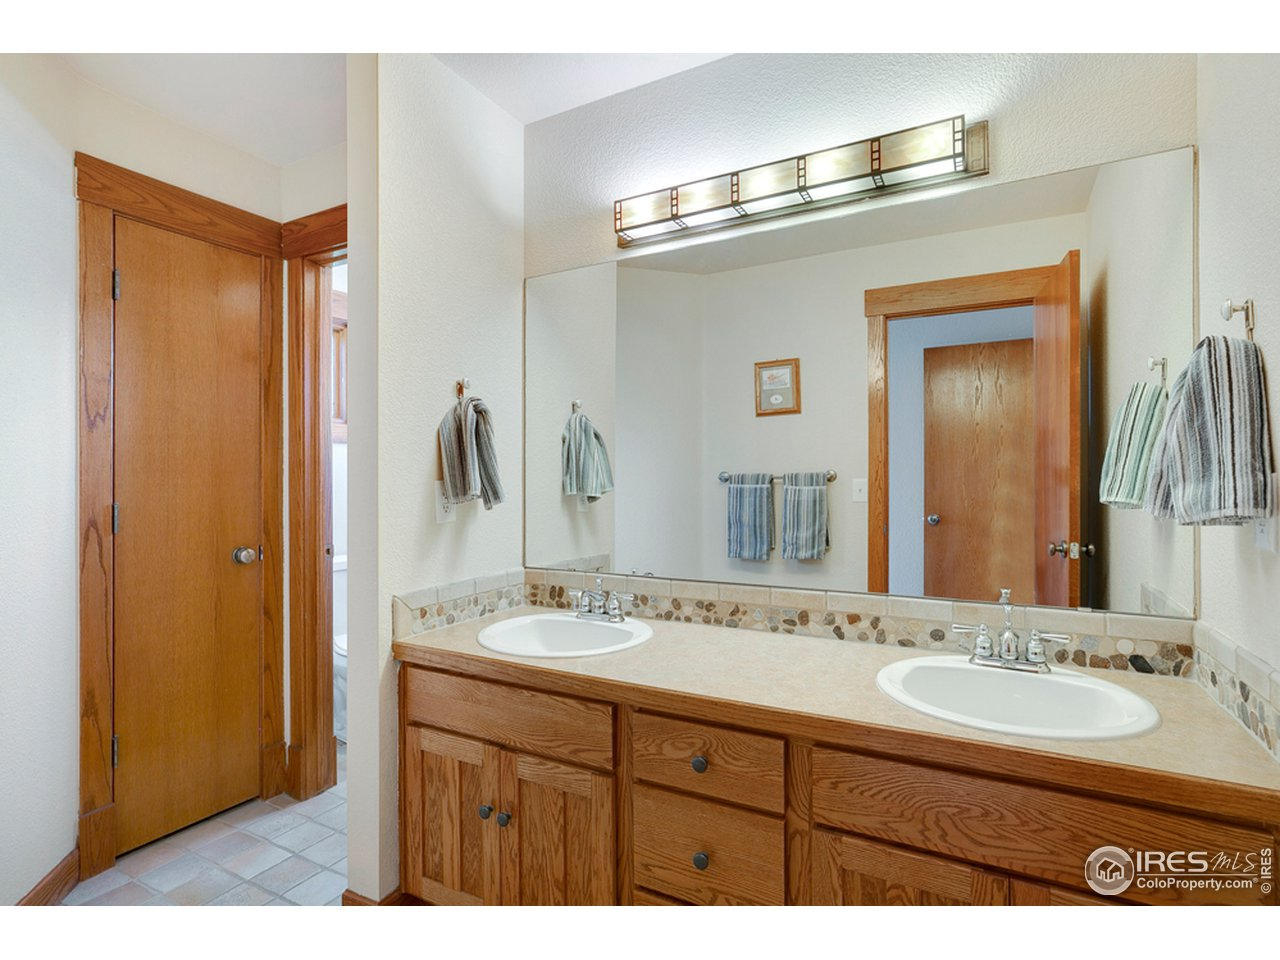 Jack and Jill bathroom w/ double vanity is shared by the upstairs bedrooms